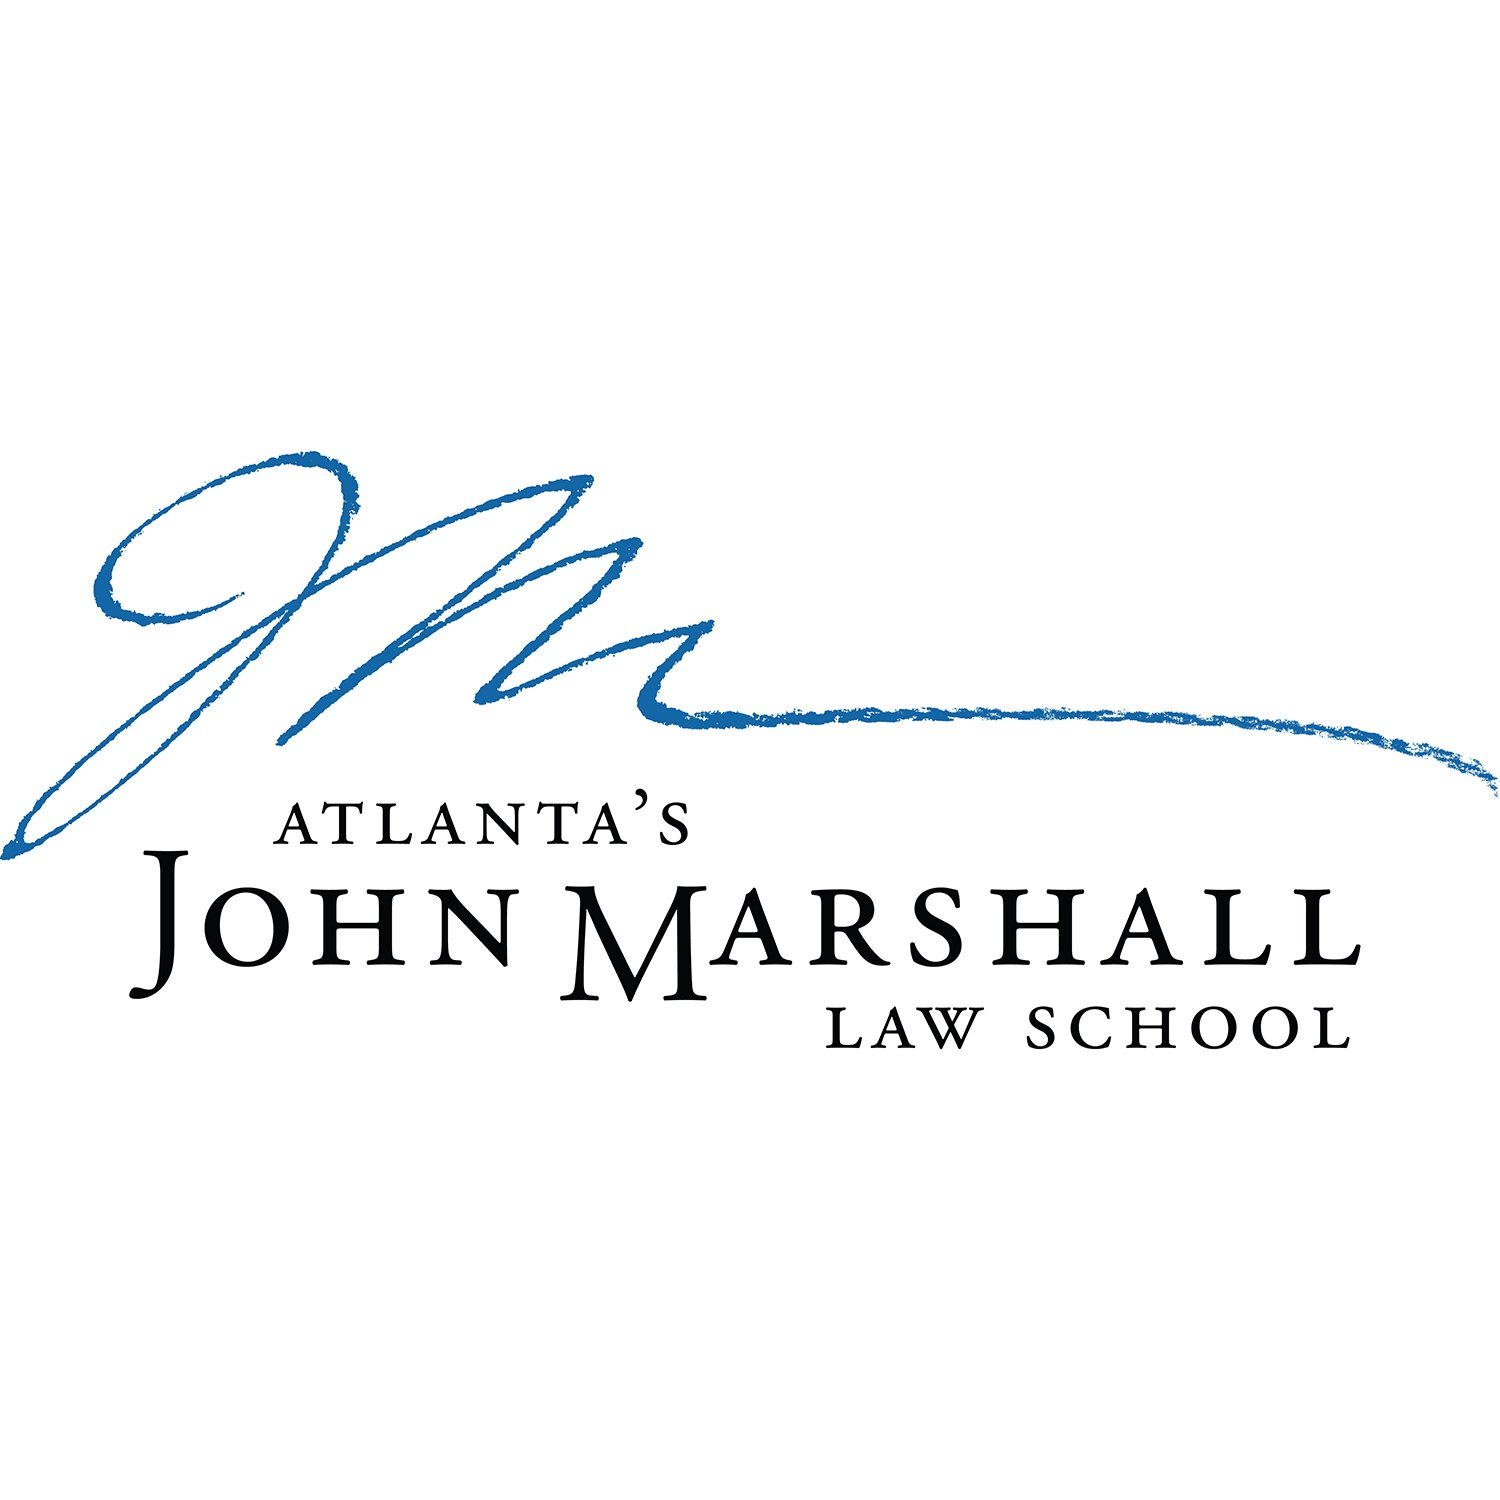 John Marshall school logo